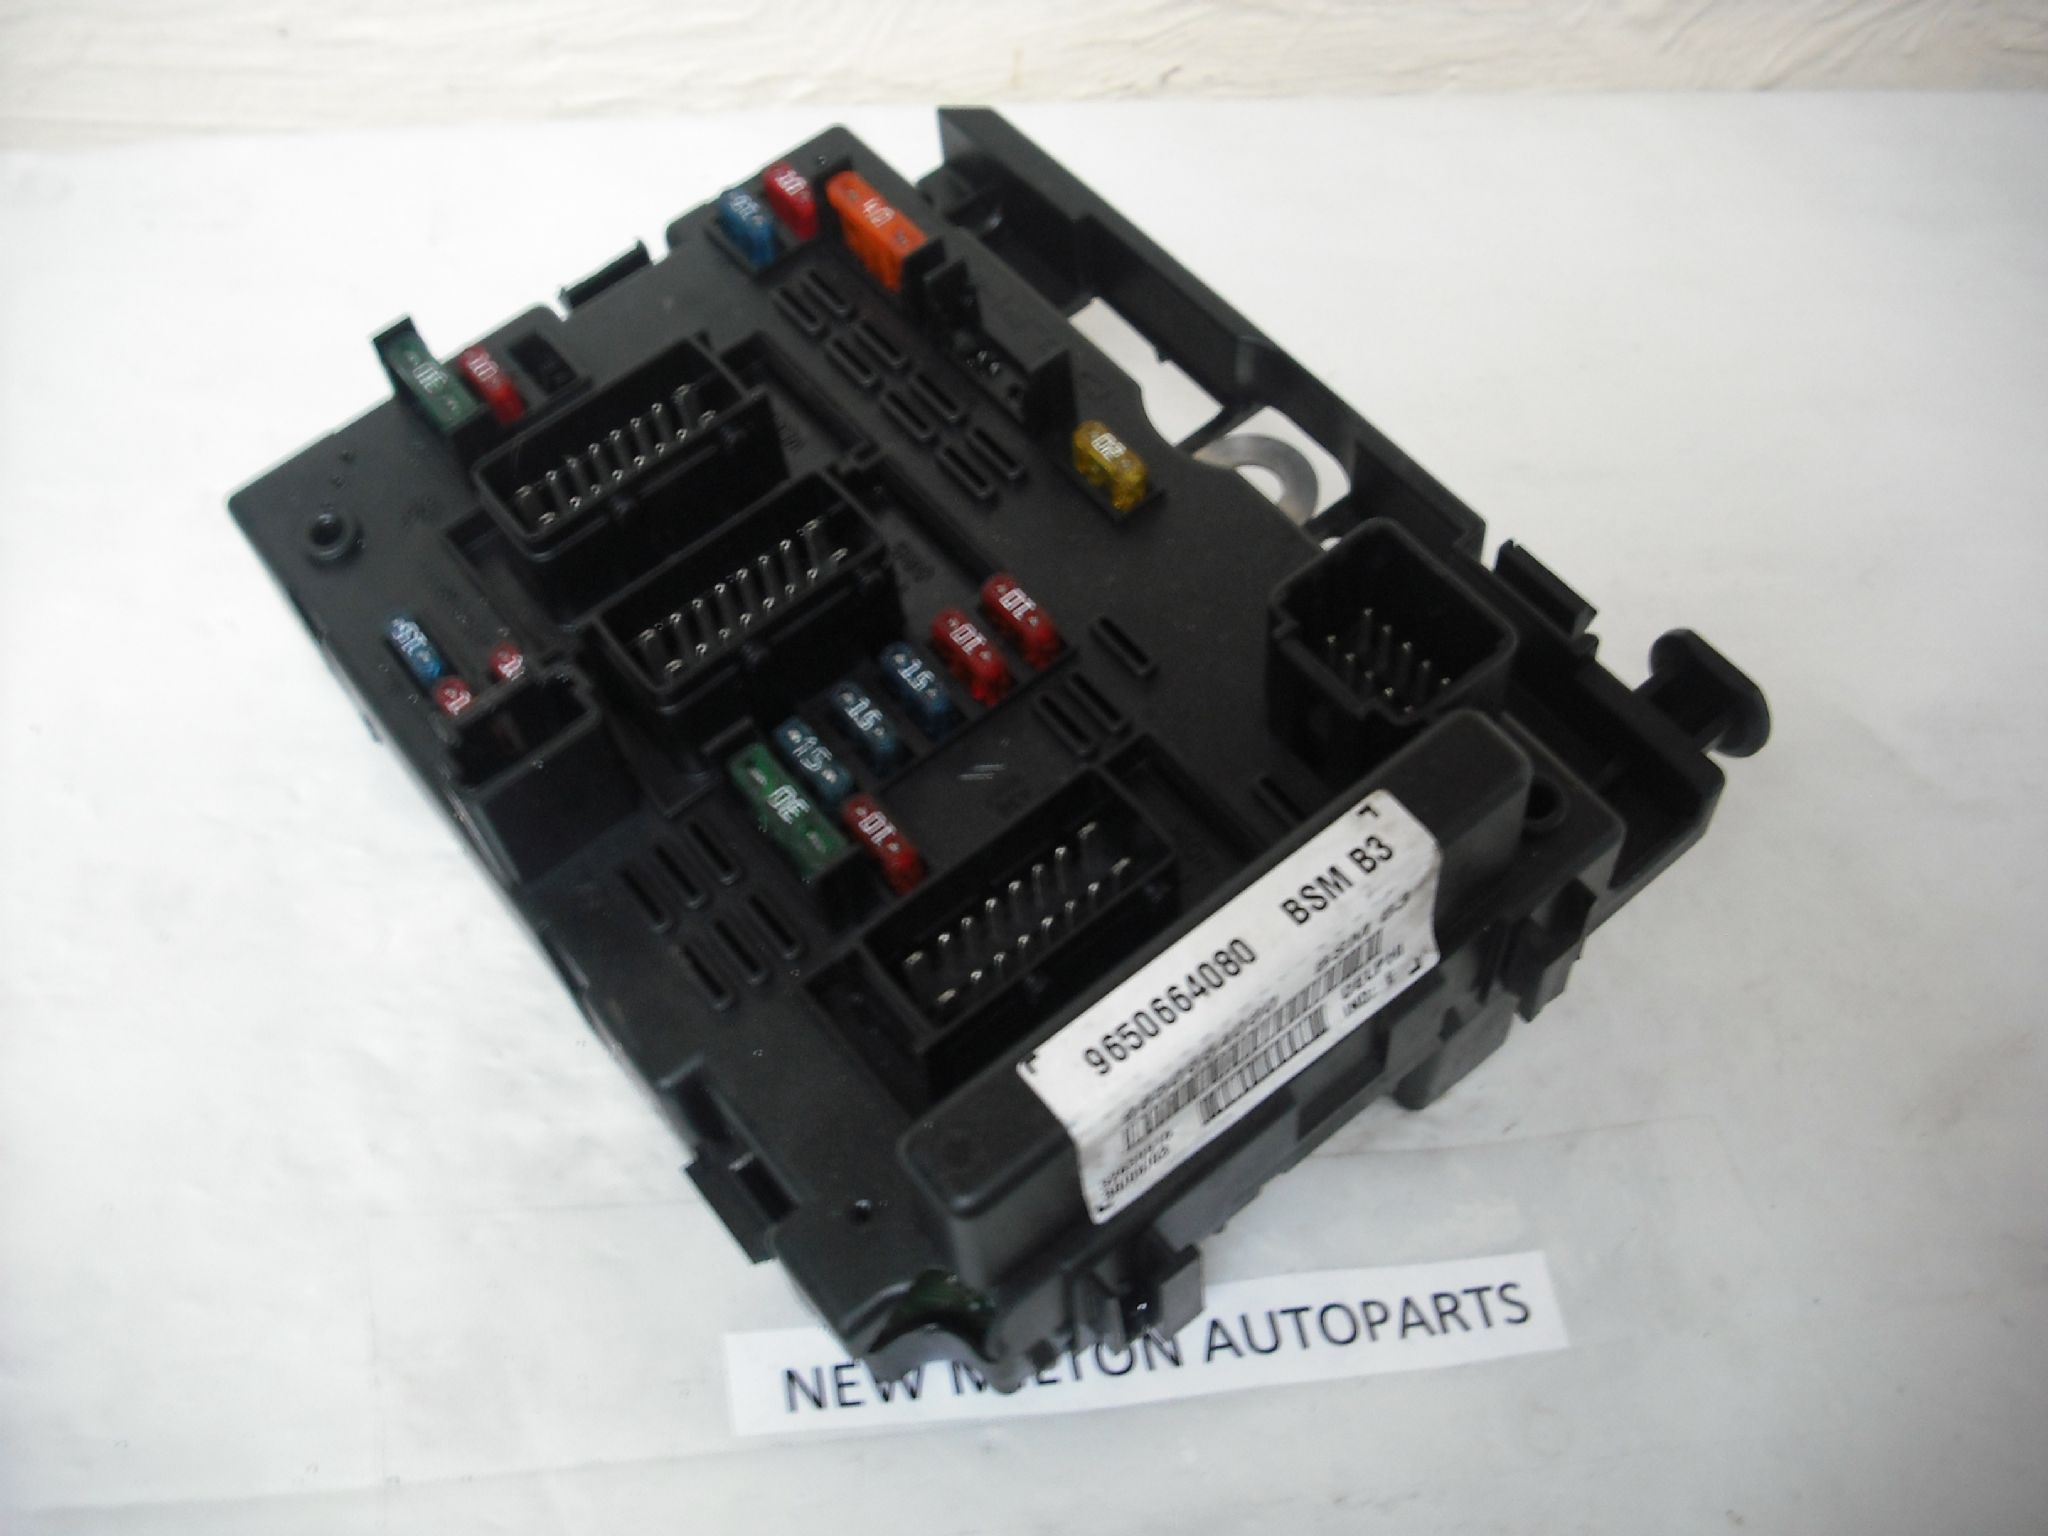 sorry out of stock ................. citroen c8 peugeot 807 fuse box controller 9650664080 bsm b3 delphi 6197 p sorry out of stock citroen c8 peugeot 807 fuse citroen c8 fuse box locations at n-0.co